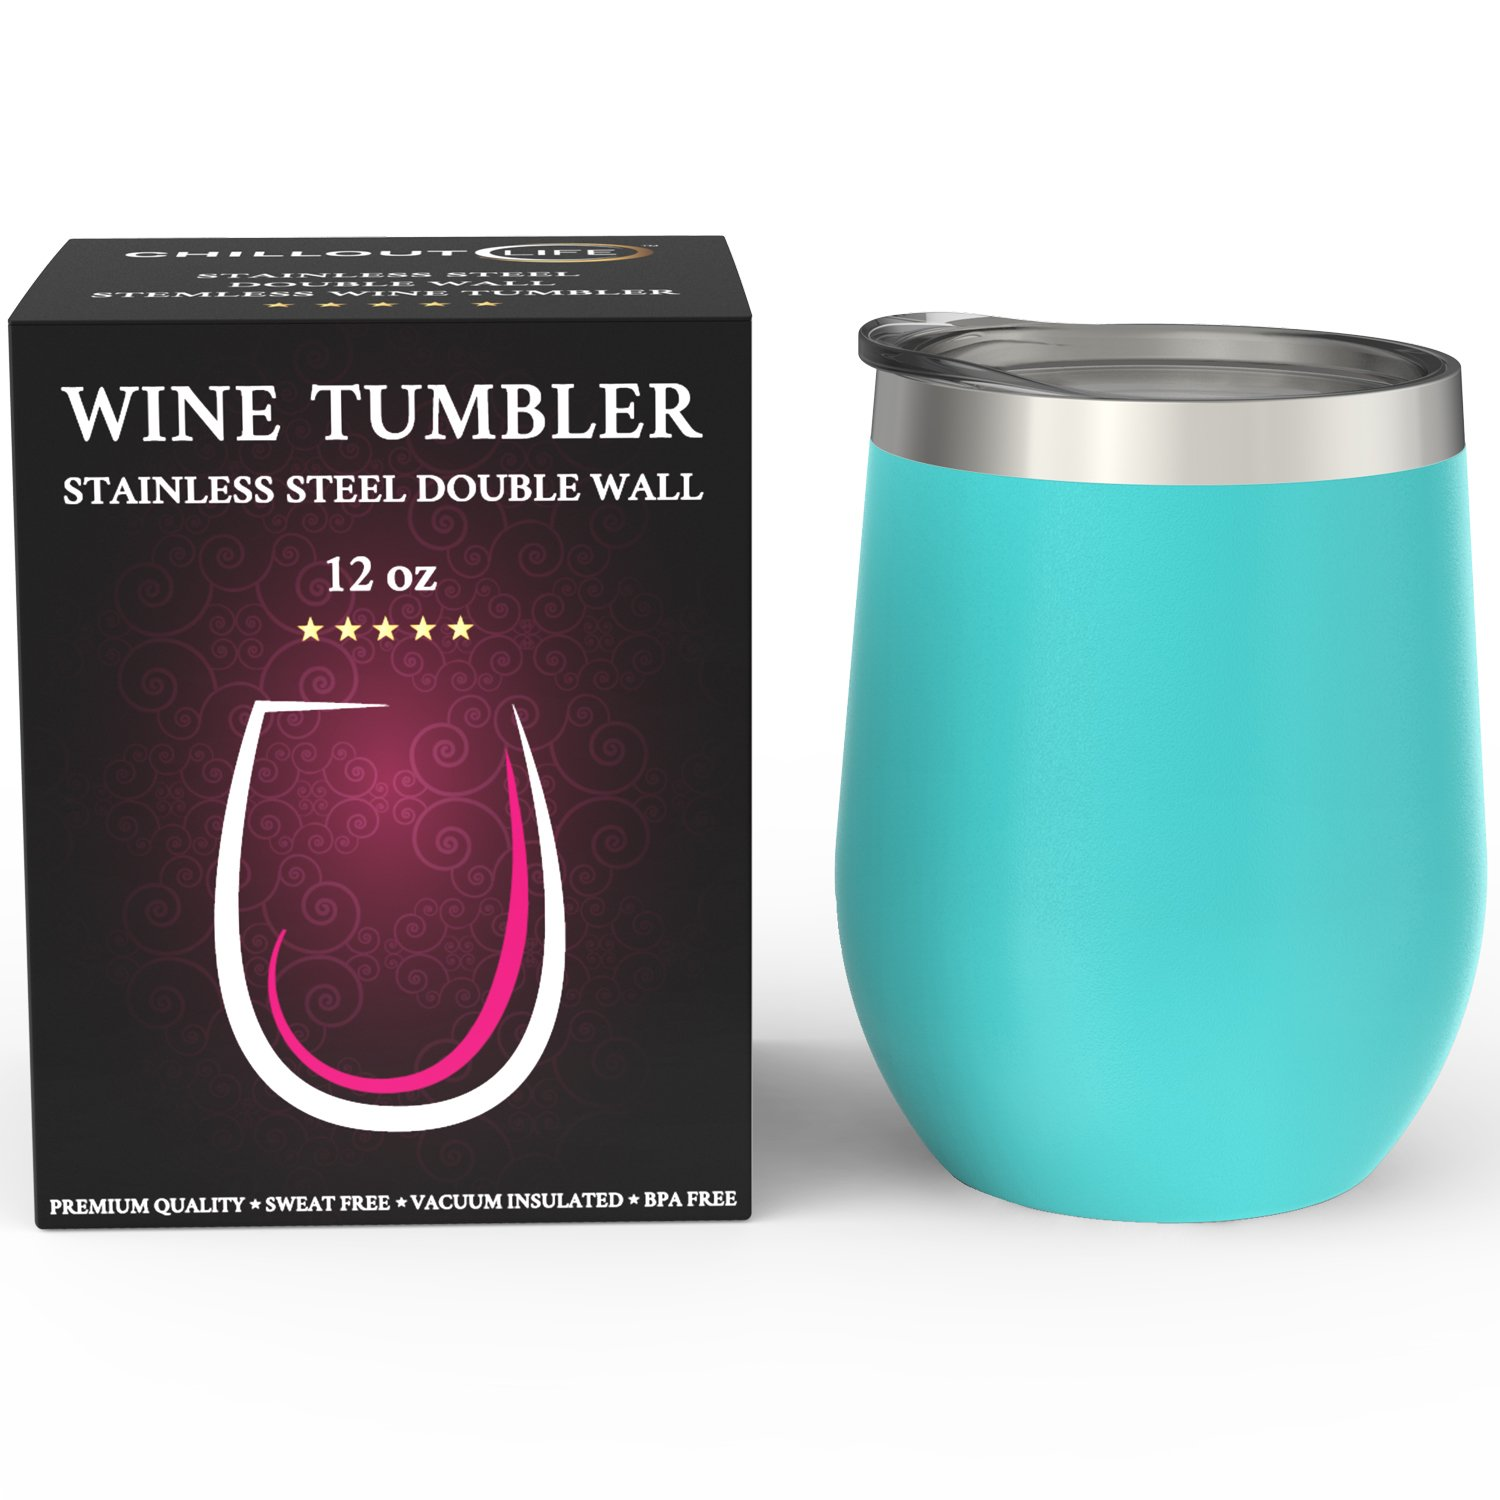 Stainless Steel Stemless Wine Glass Tumbler with Lid, 12 oz   Double Wall Vacuum Insulated Travel Tumbler Cup for Coffee, Wine, Cocktails, Ice Cream   Sweat Free, Unbreakable, BPA Free, Powder Coated by CHILLOUT LIFE (Image #5)